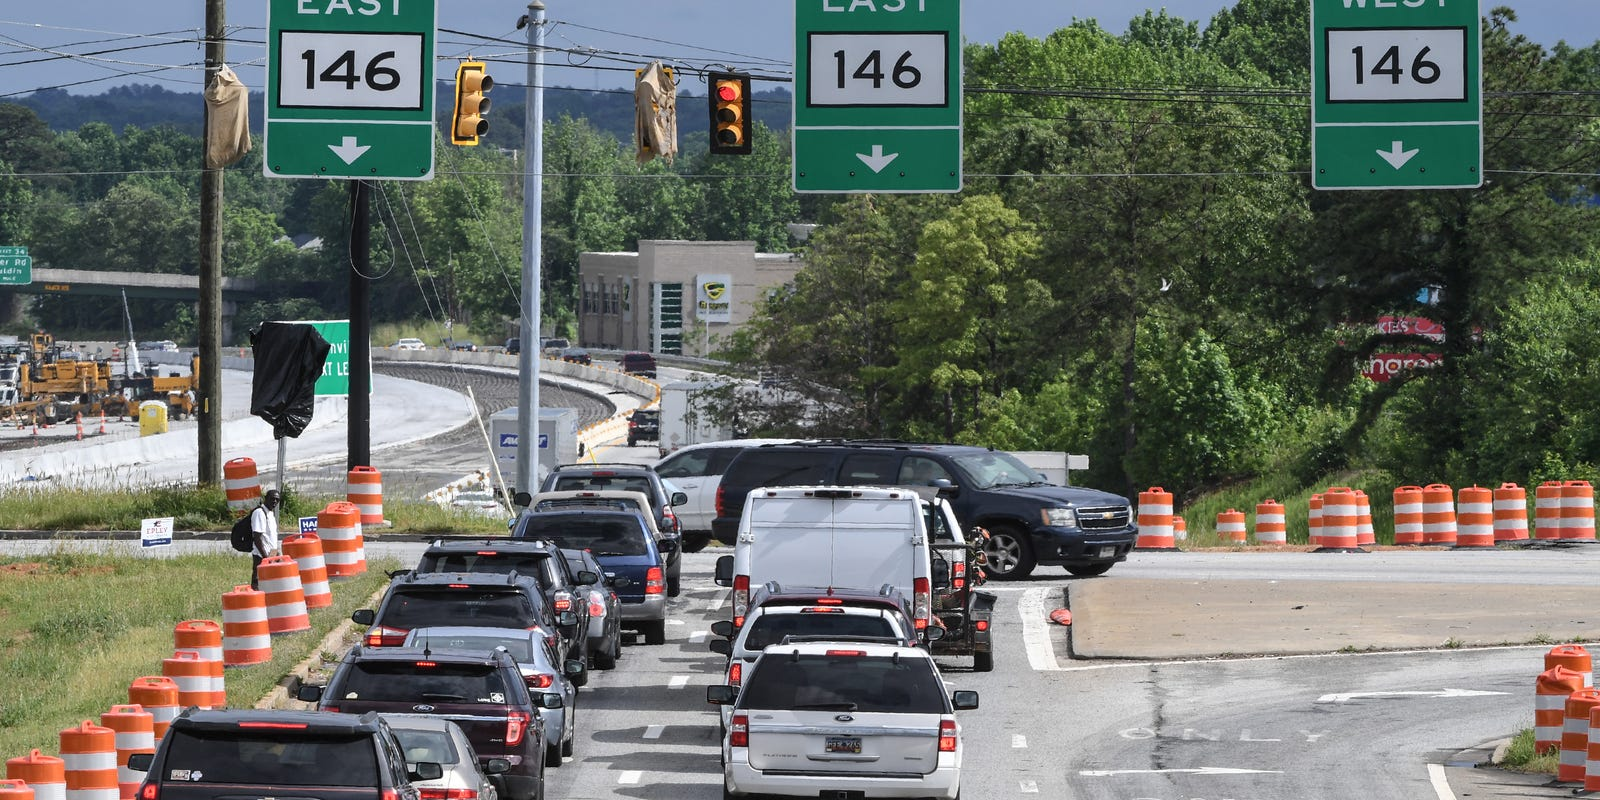 Traffic is increasing, but Woodruff Road growth not slowing down